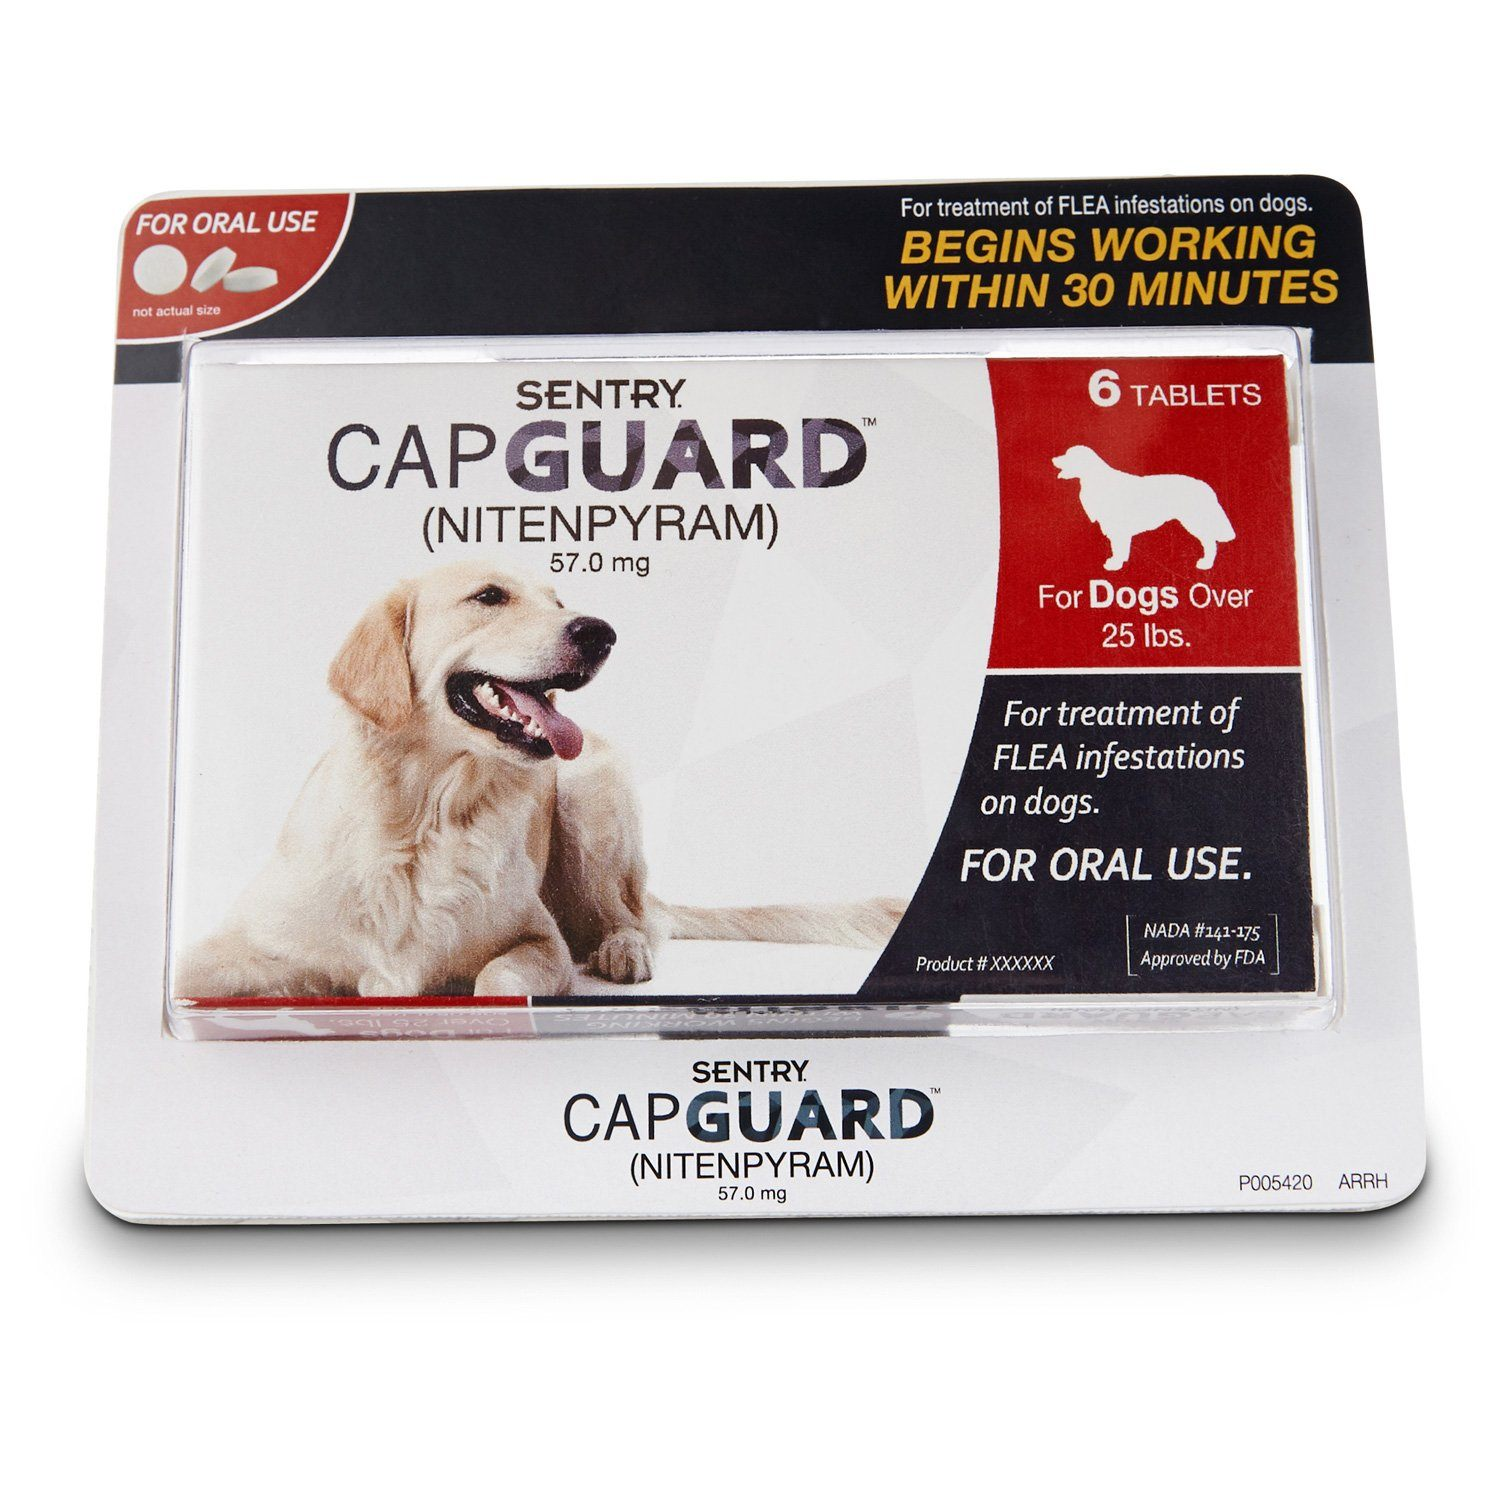 Sentry Capguard Oral Flea Tablets For Dogs